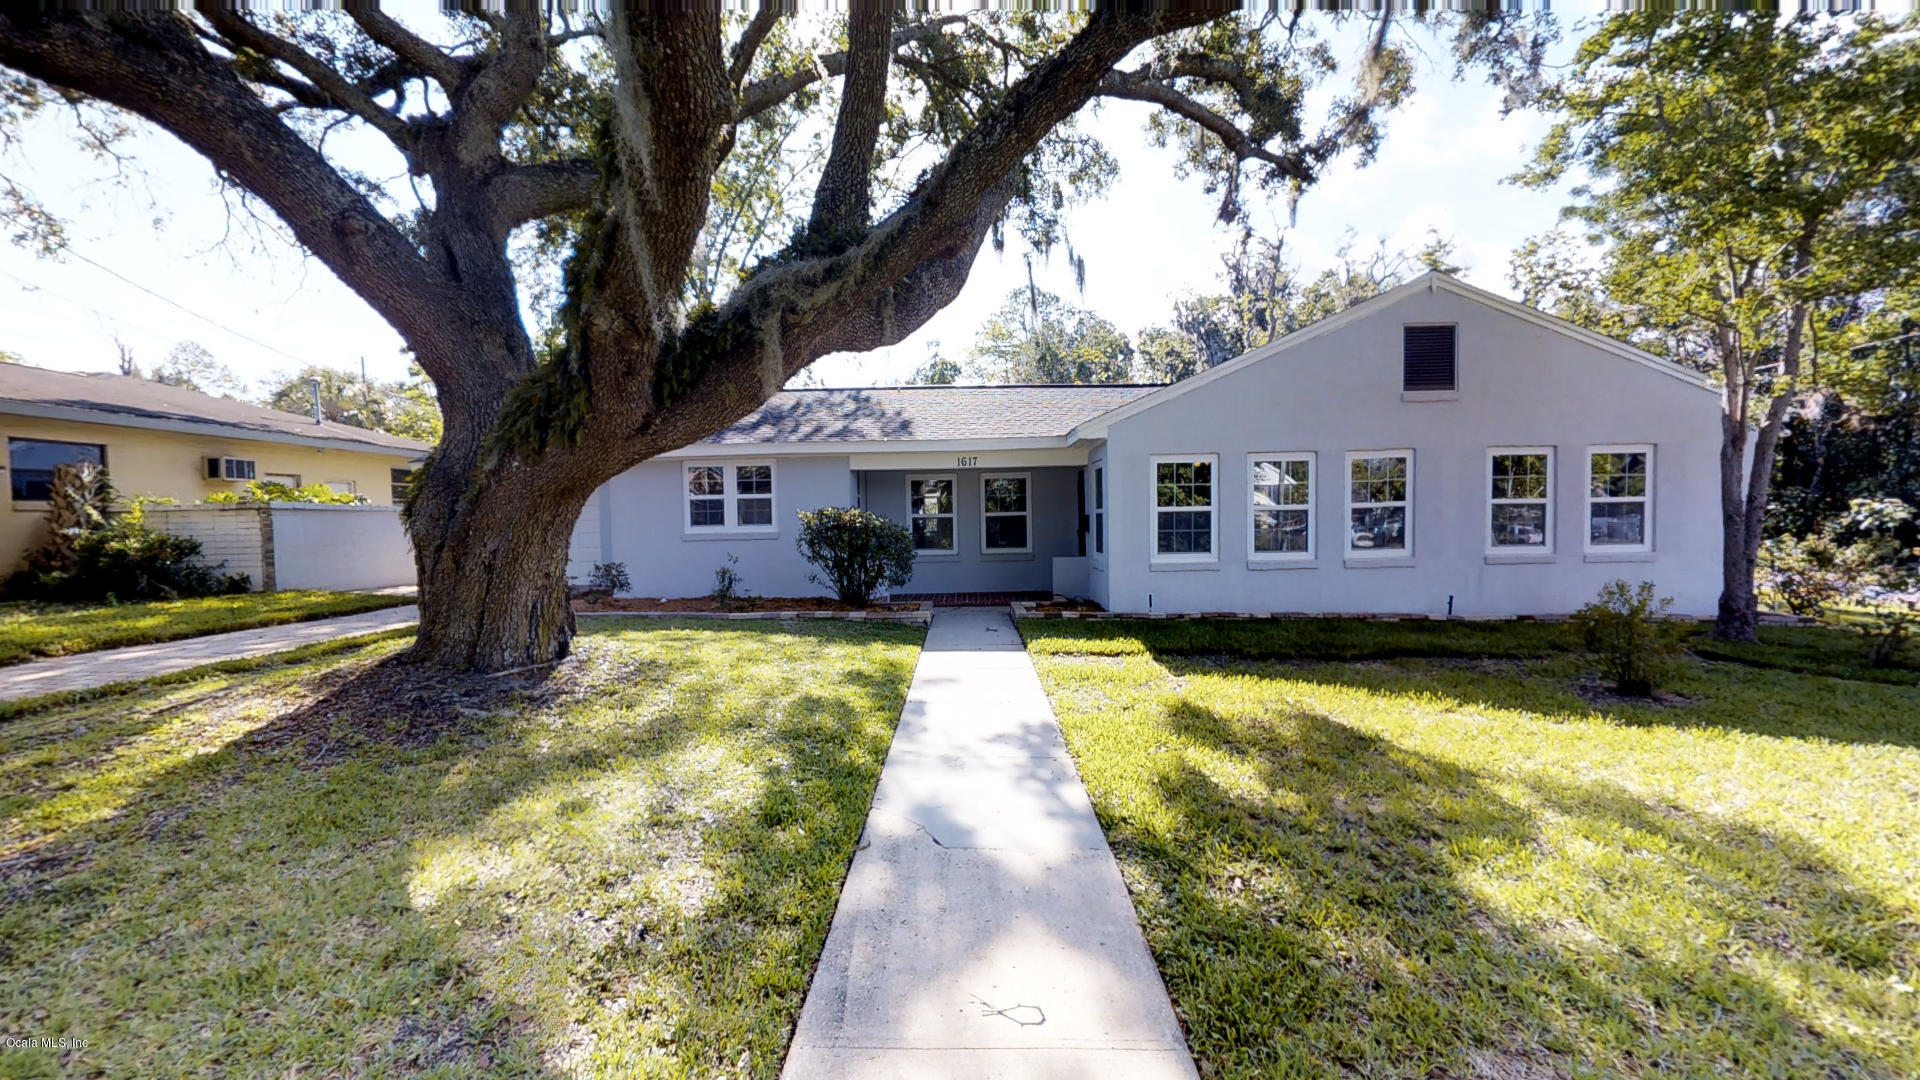 1617 SE 11TH AVENUE, OCALA, FL 34471